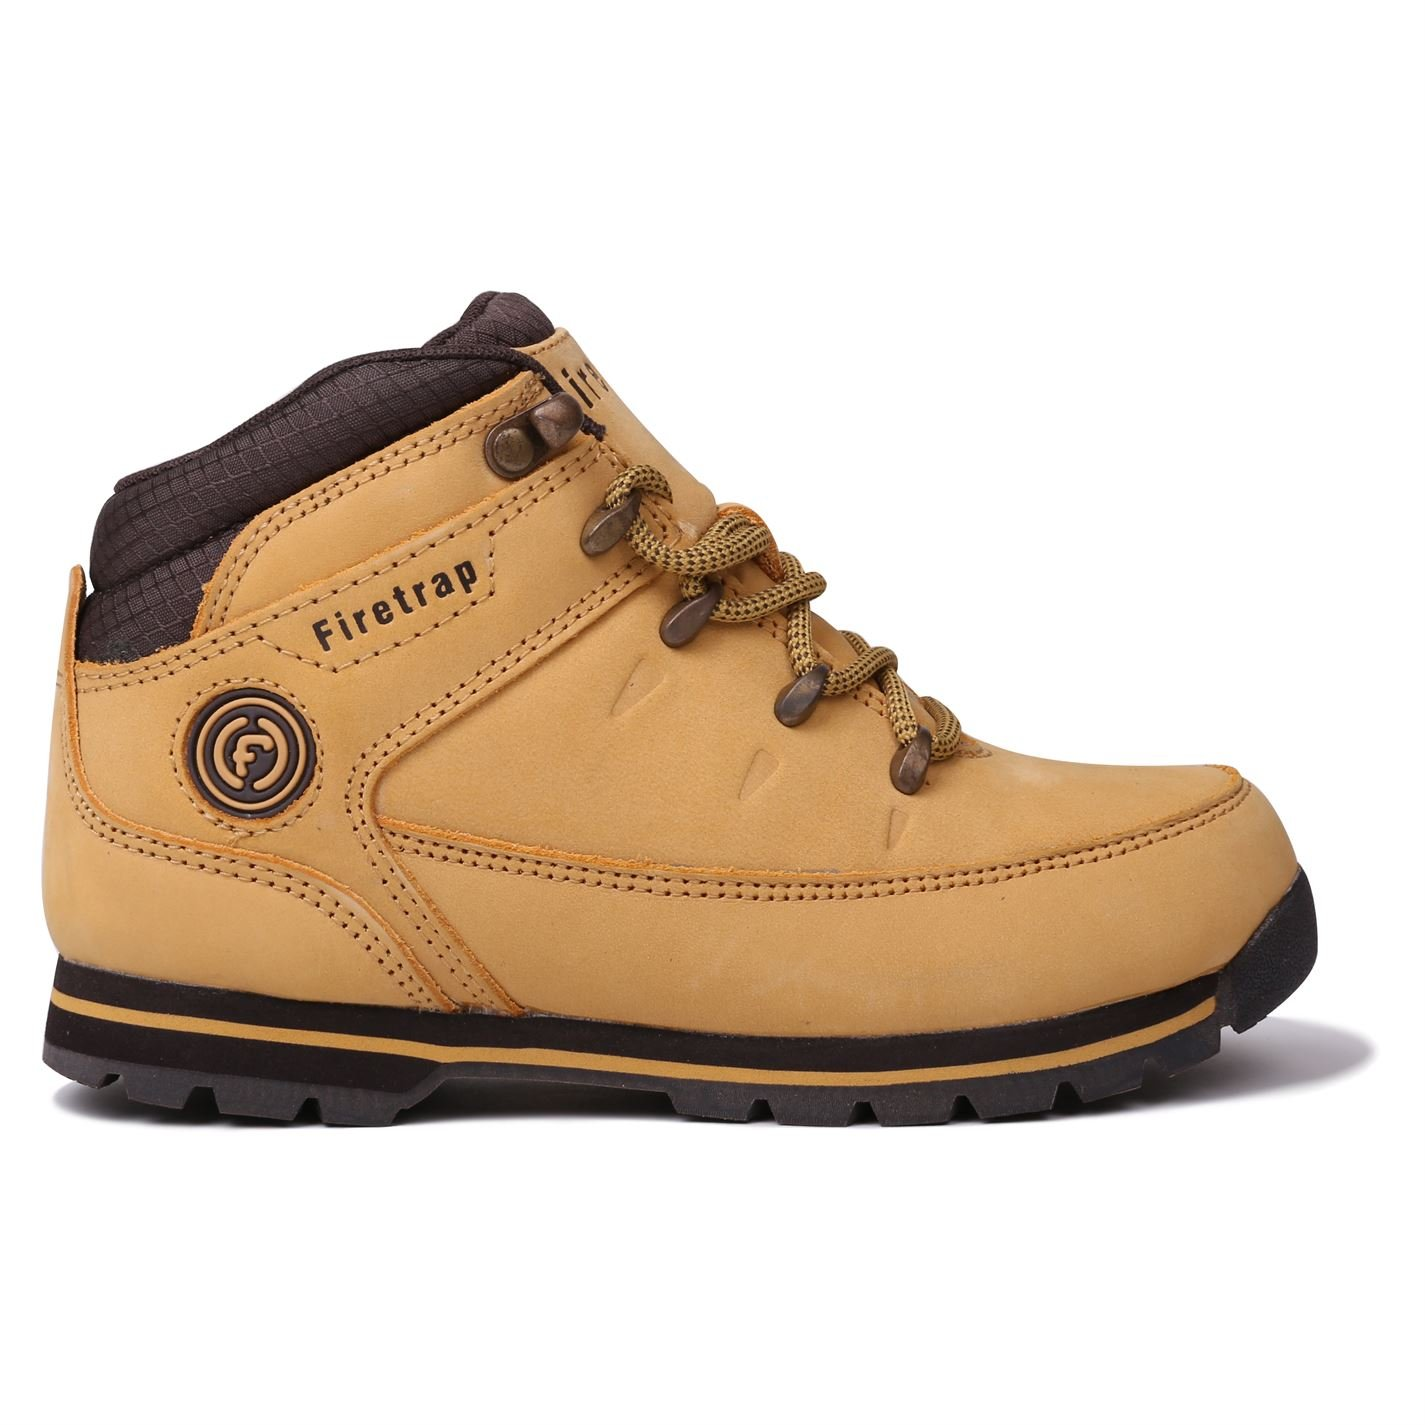 Firetrap Kids children Rhino Leather Lace Up Walking Hiking Outdoor Shoes Boots Honey/Brown UK C13 (32)